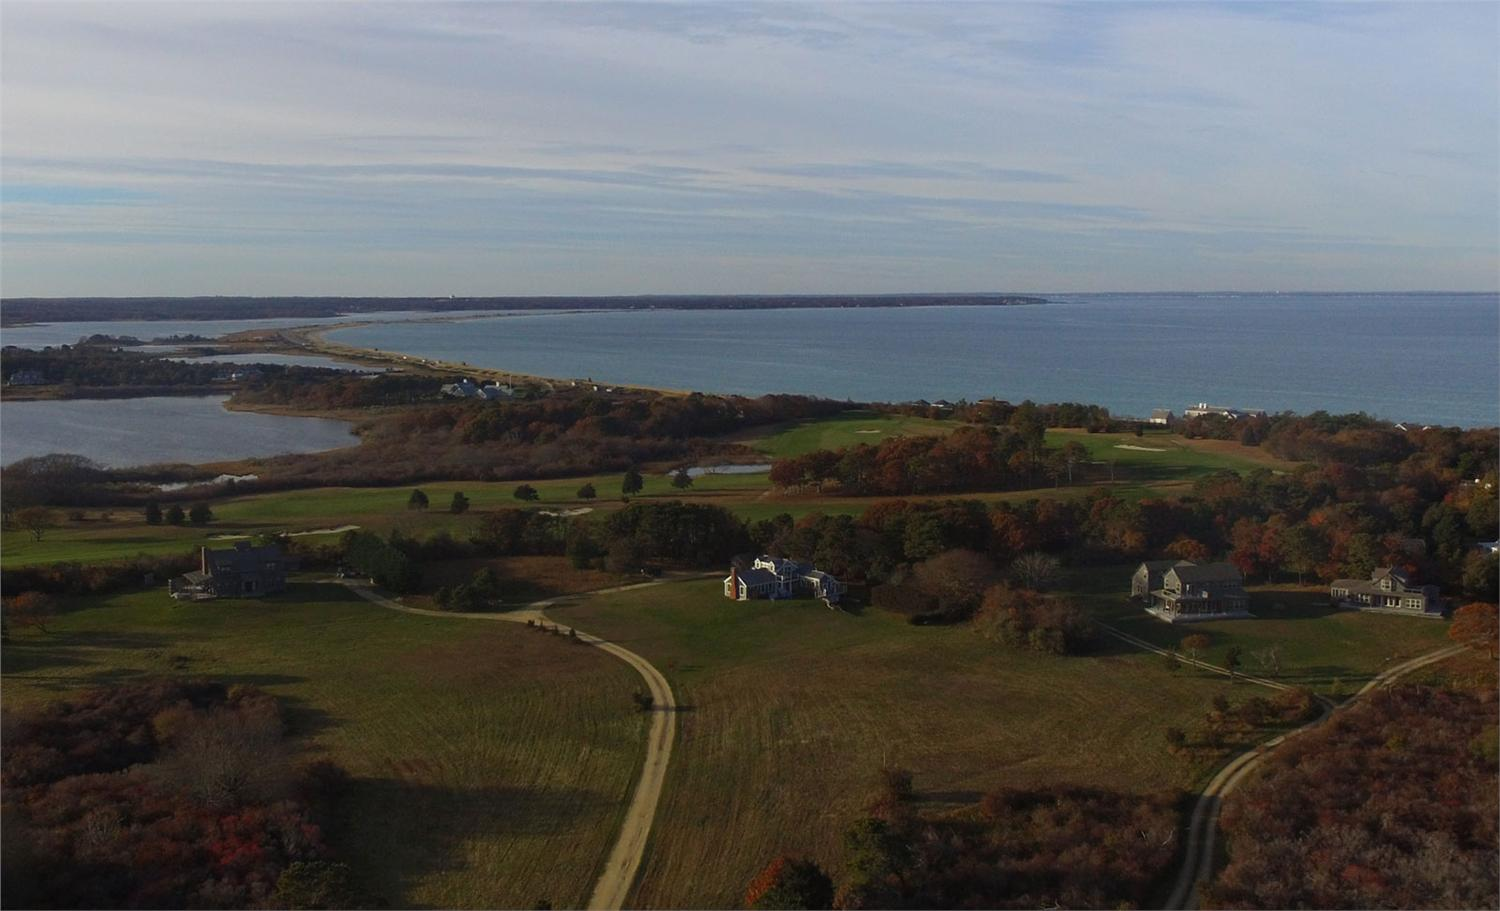 There's a lot ore to Martha's Vineyard than meets the eye. We take a look at one part of the Vineyard, from above!